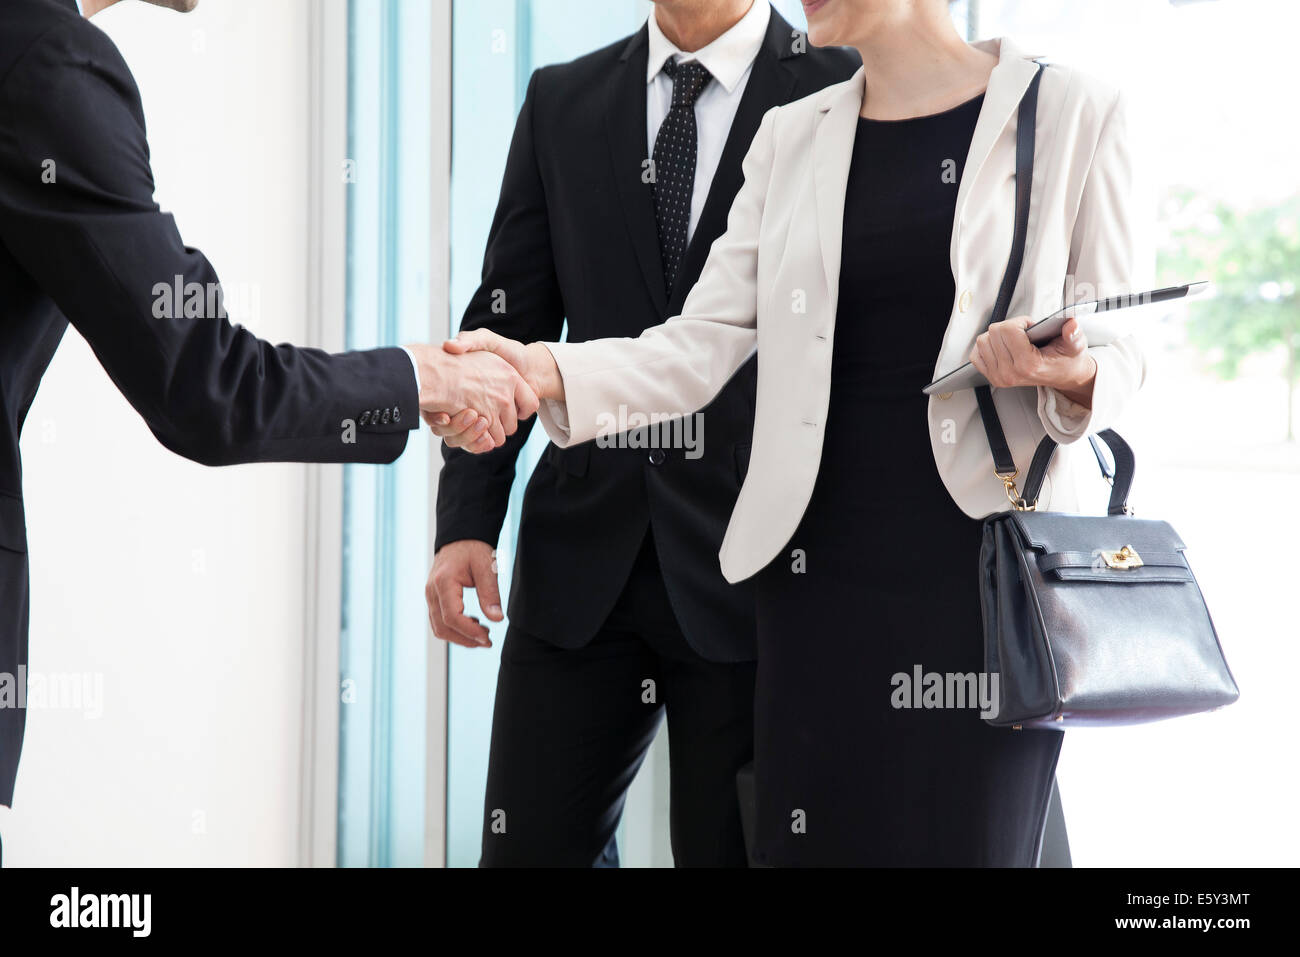 Businesswoman being introduced to business associate - Stock Image